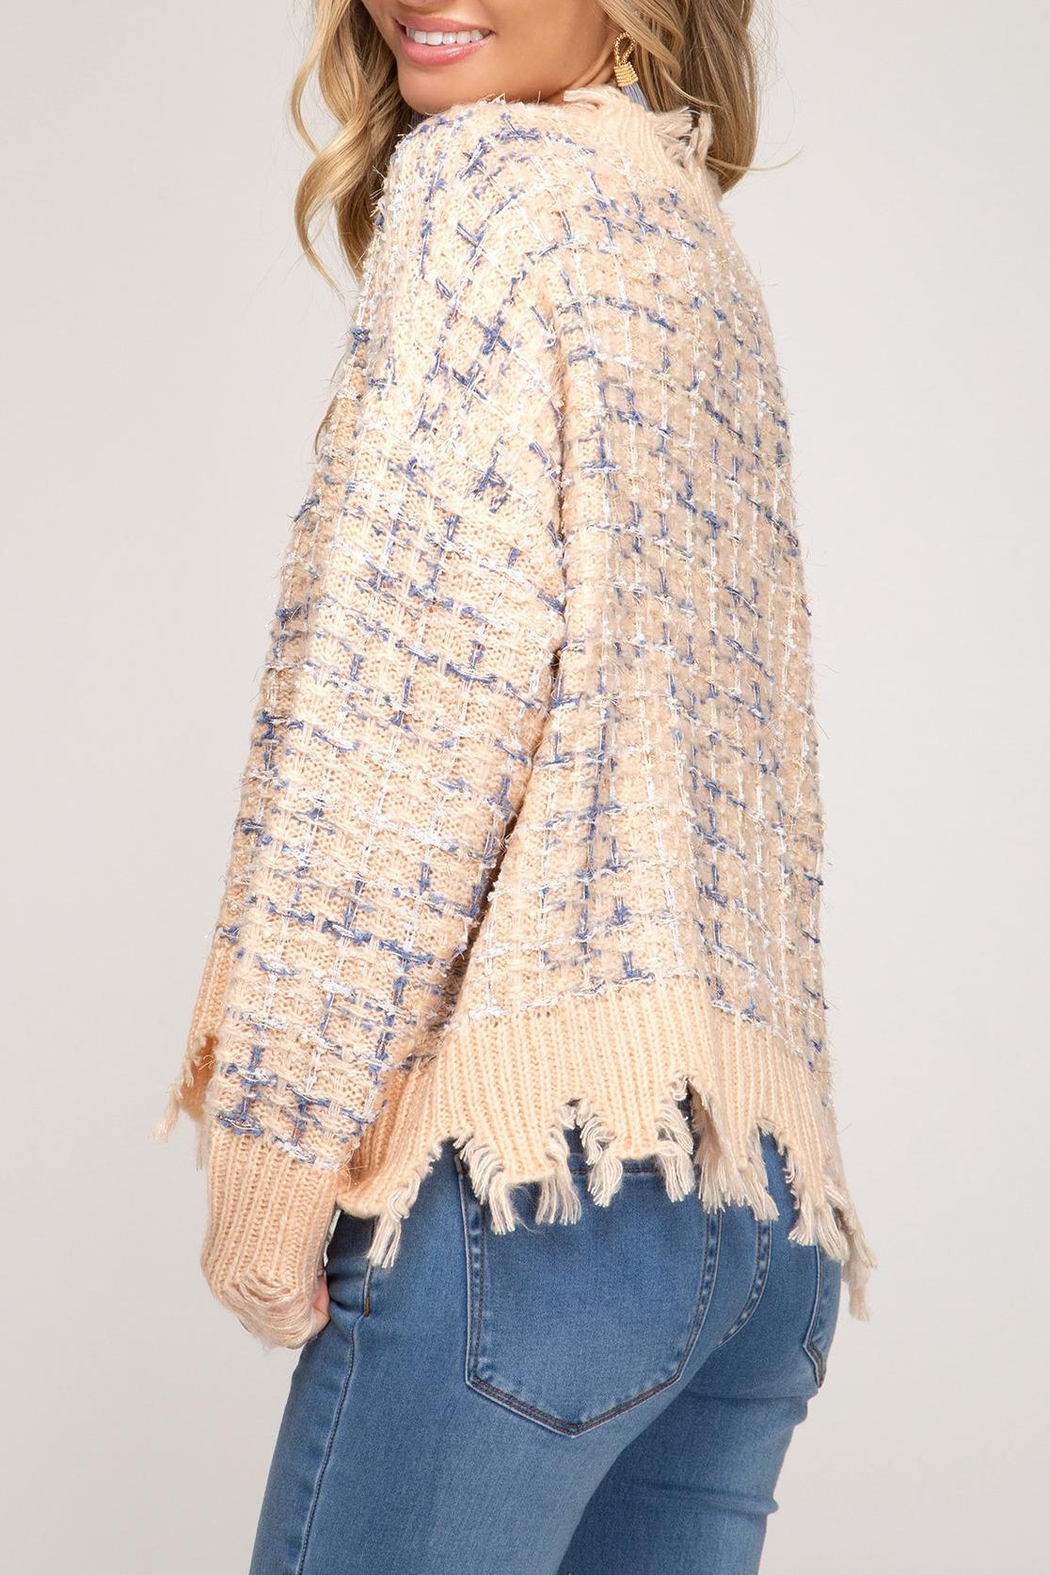 She + Sky Distressed Tweed Sweater - Side Cropped Image